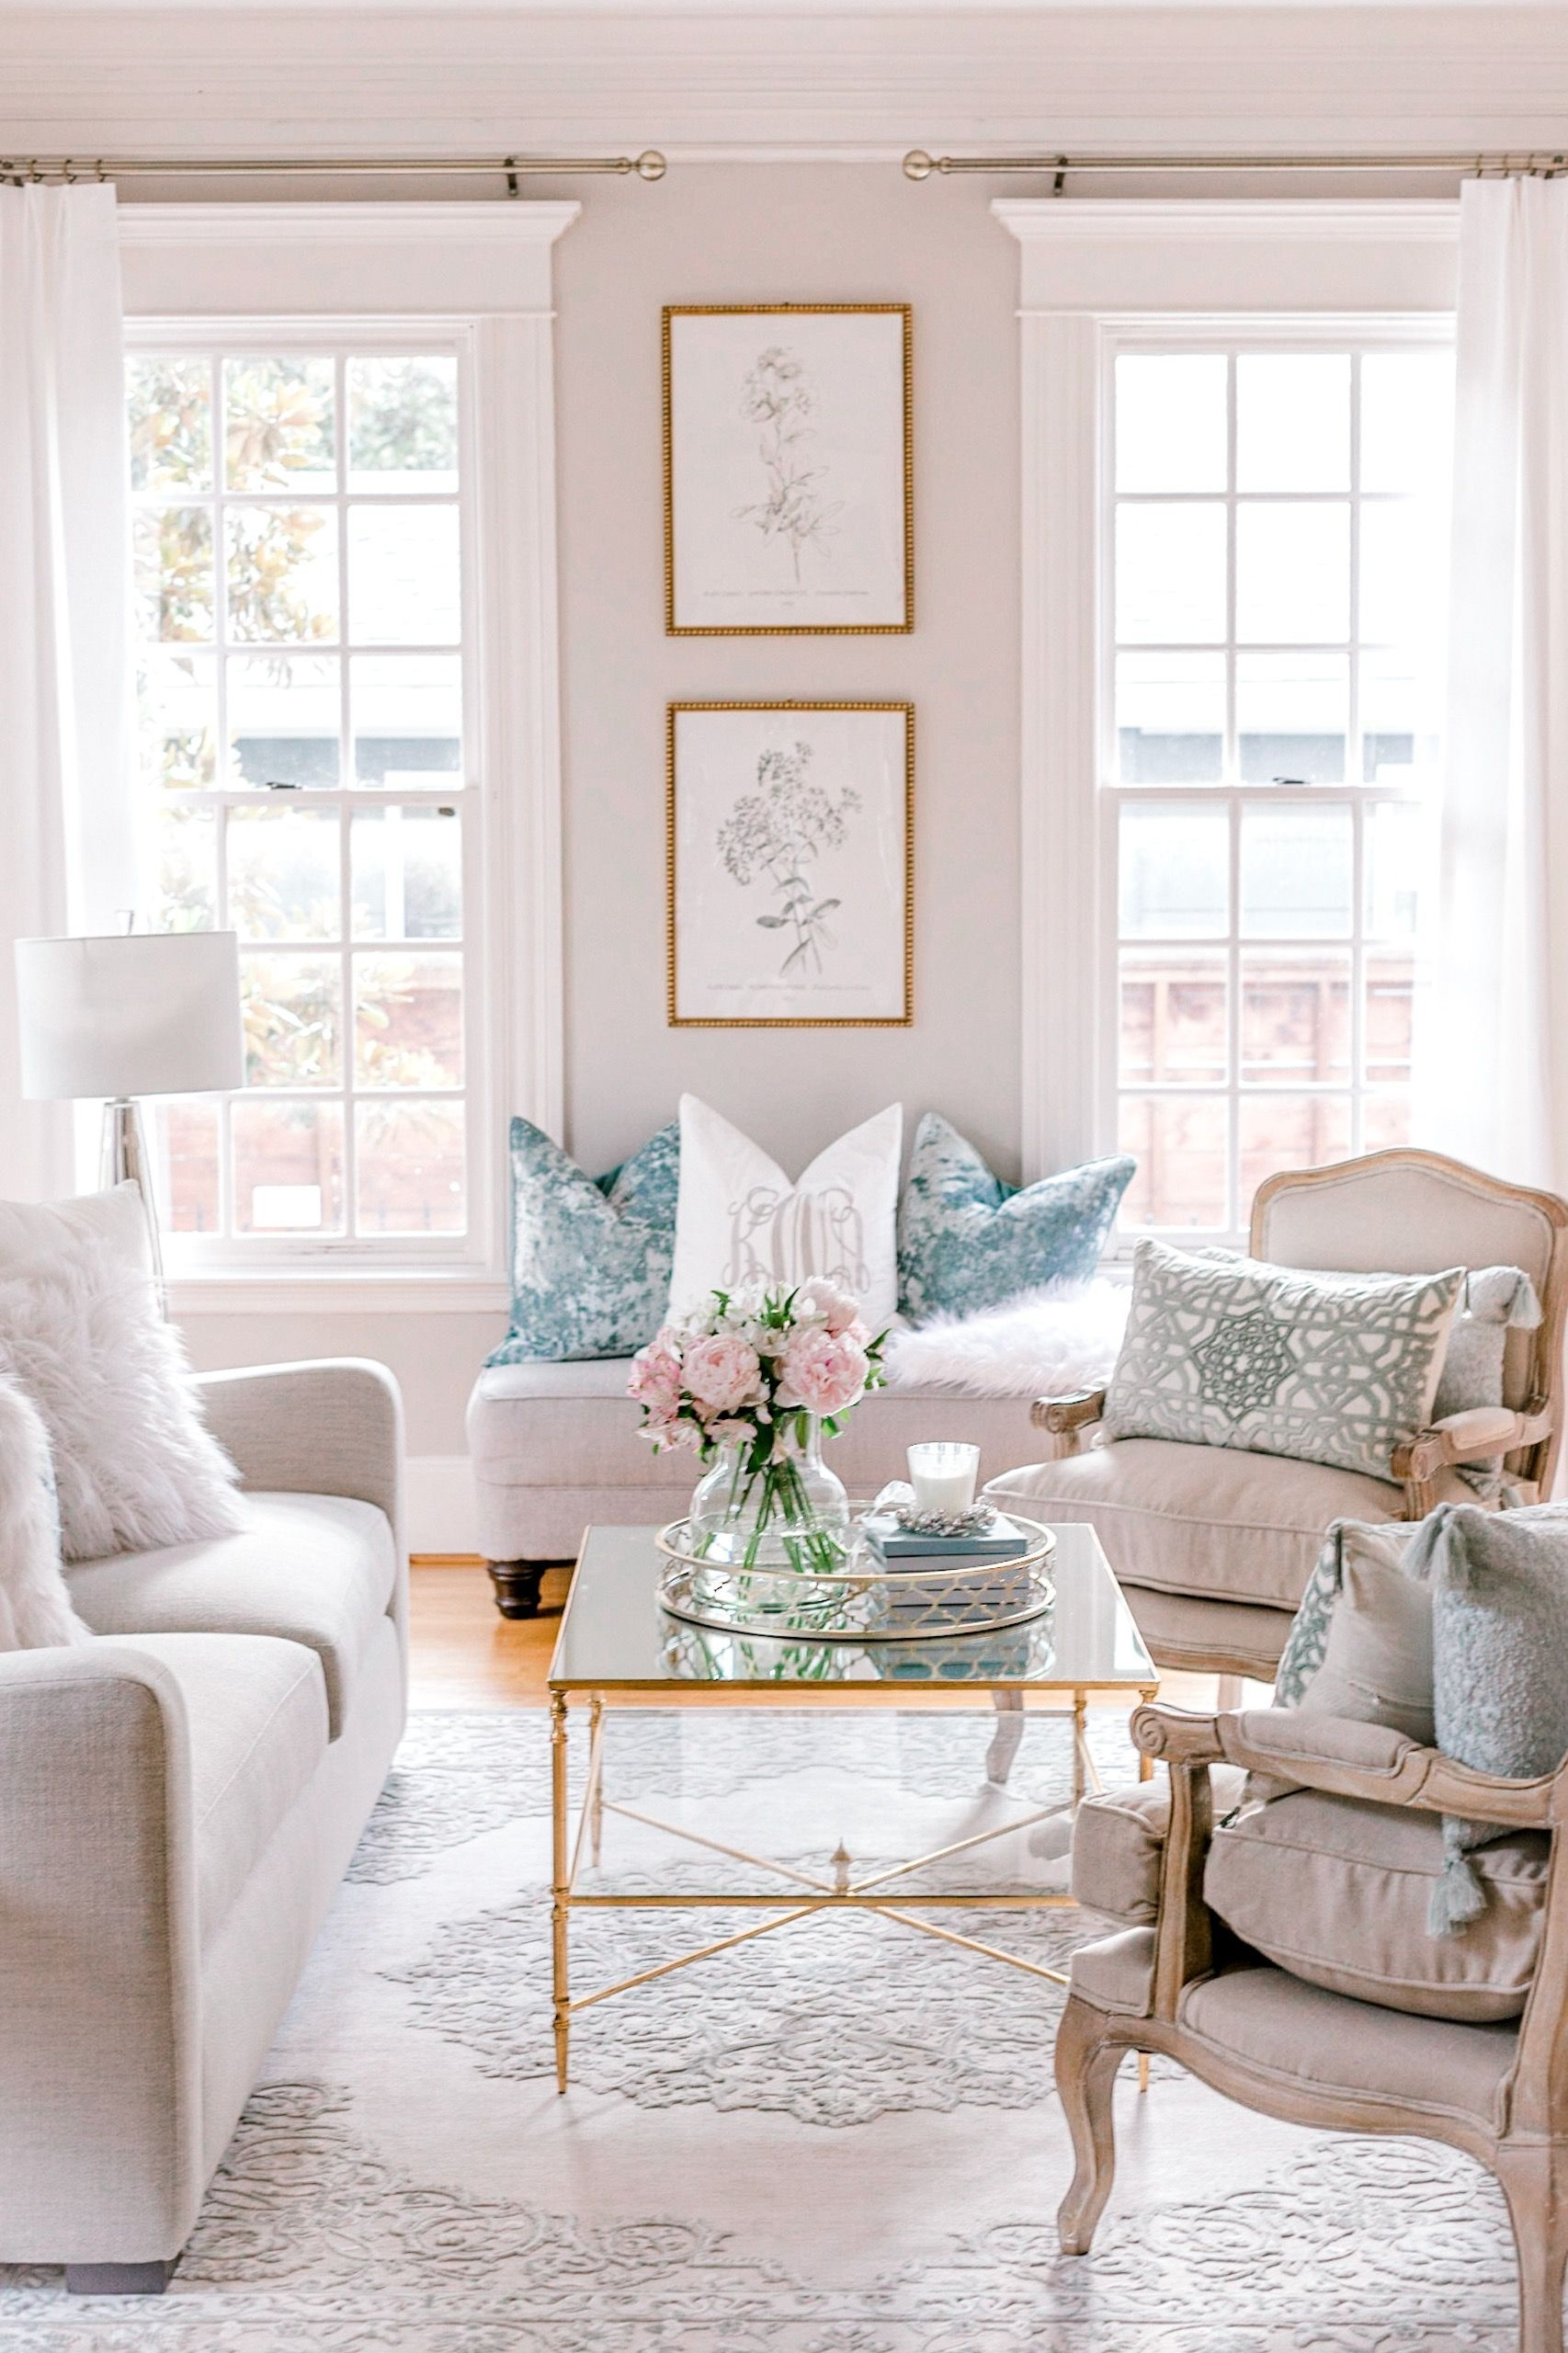 Cool Living Room Design Ideas That Looks So Adorable 31